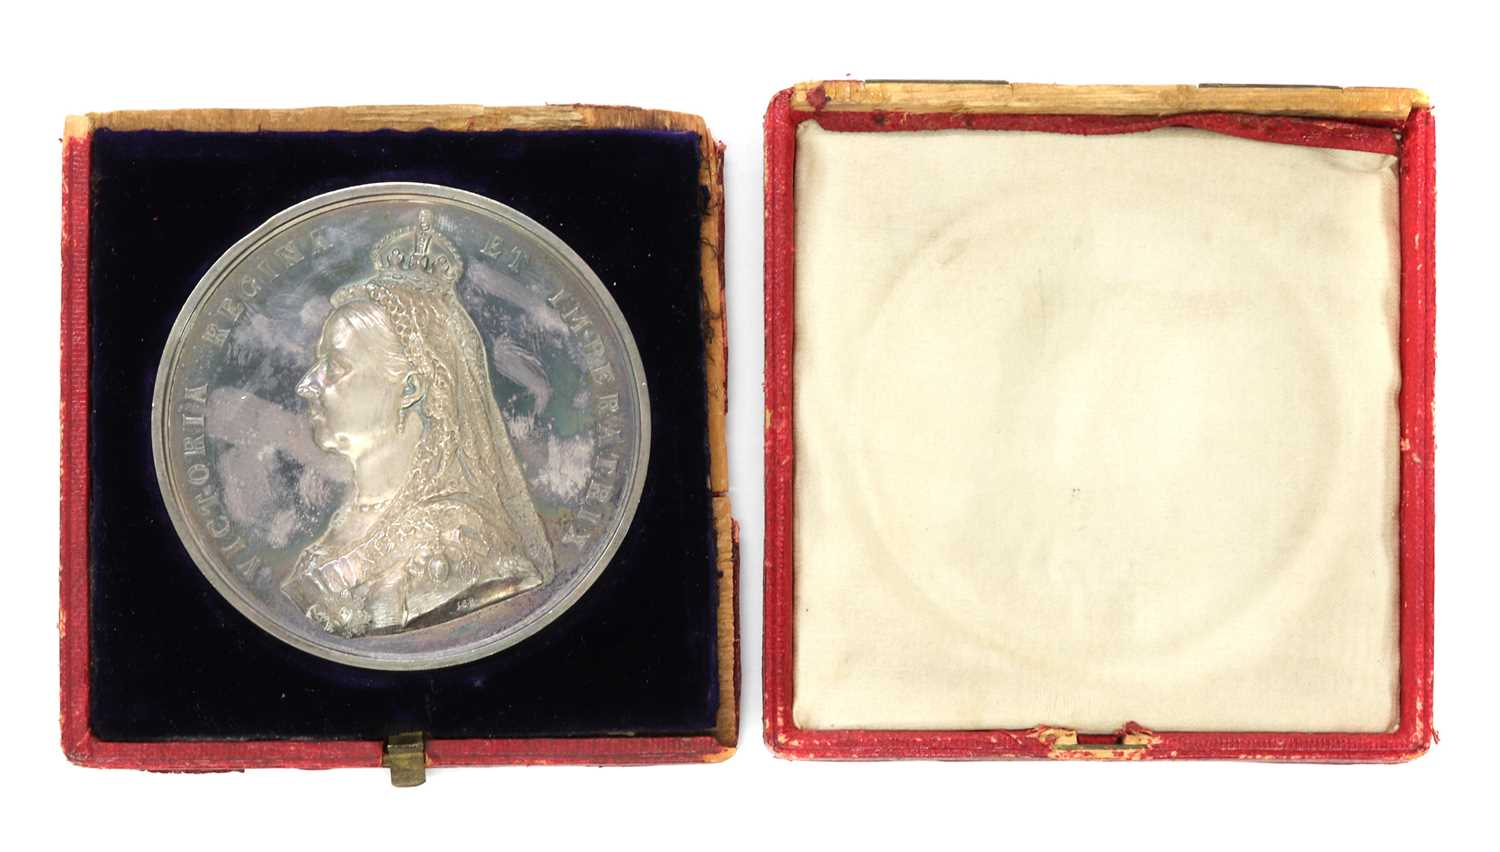 Medals, Great Britain, Victoria (1837-1901), - Image 2 of 3